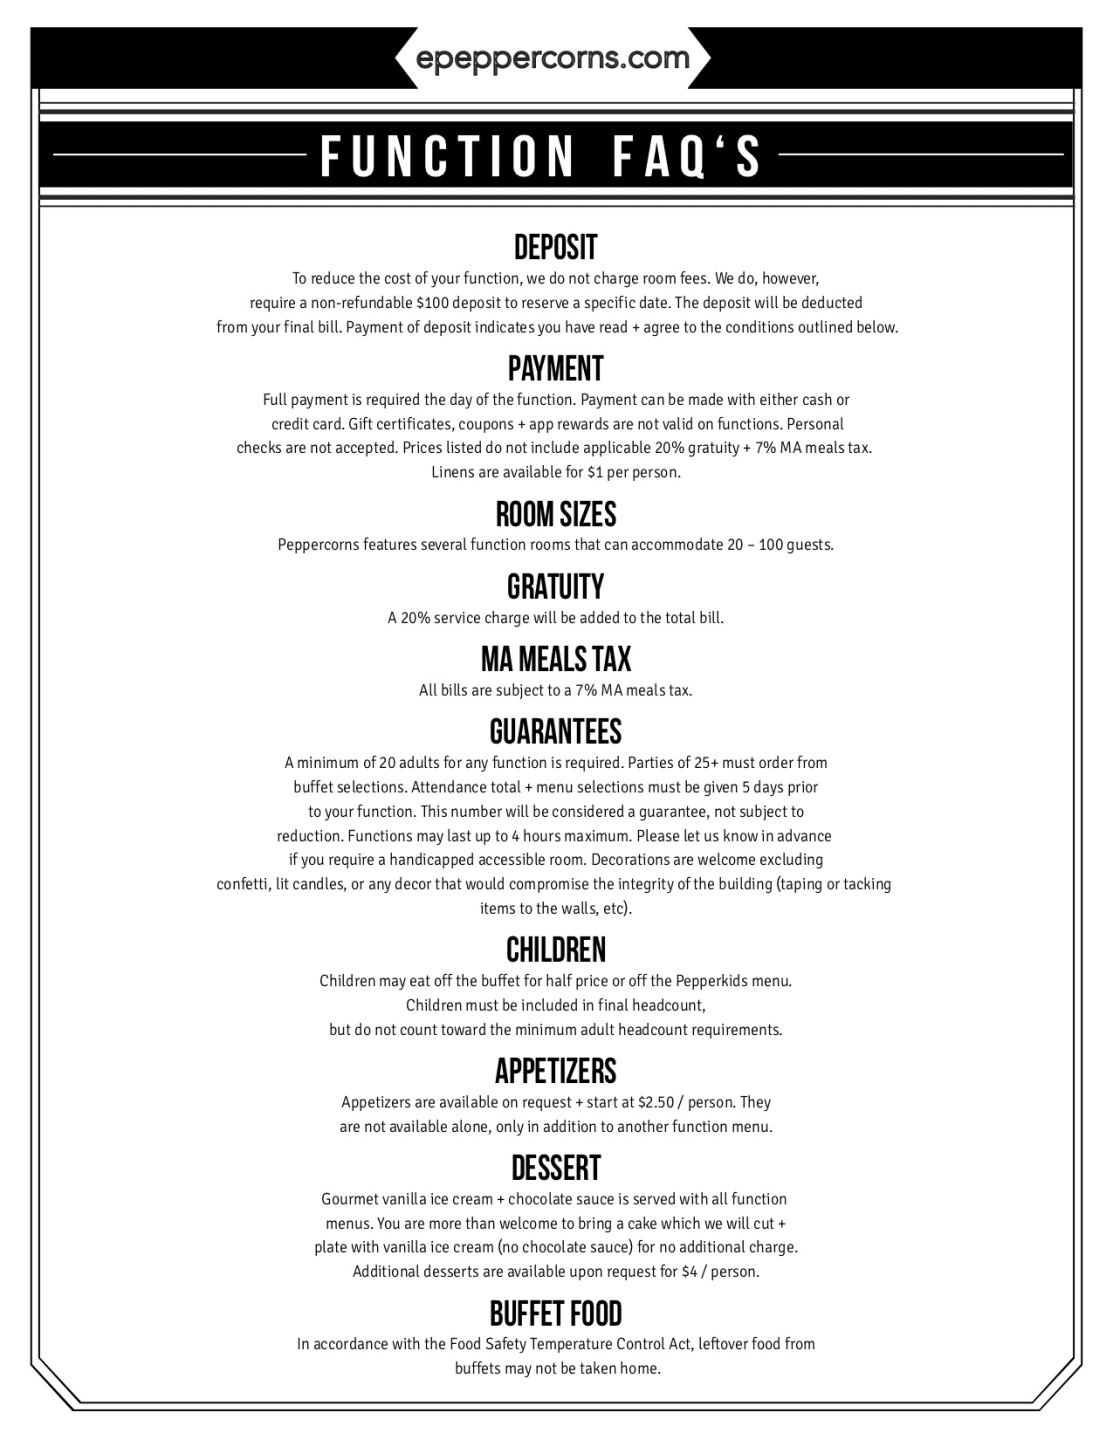 downloadable menu - function faqs